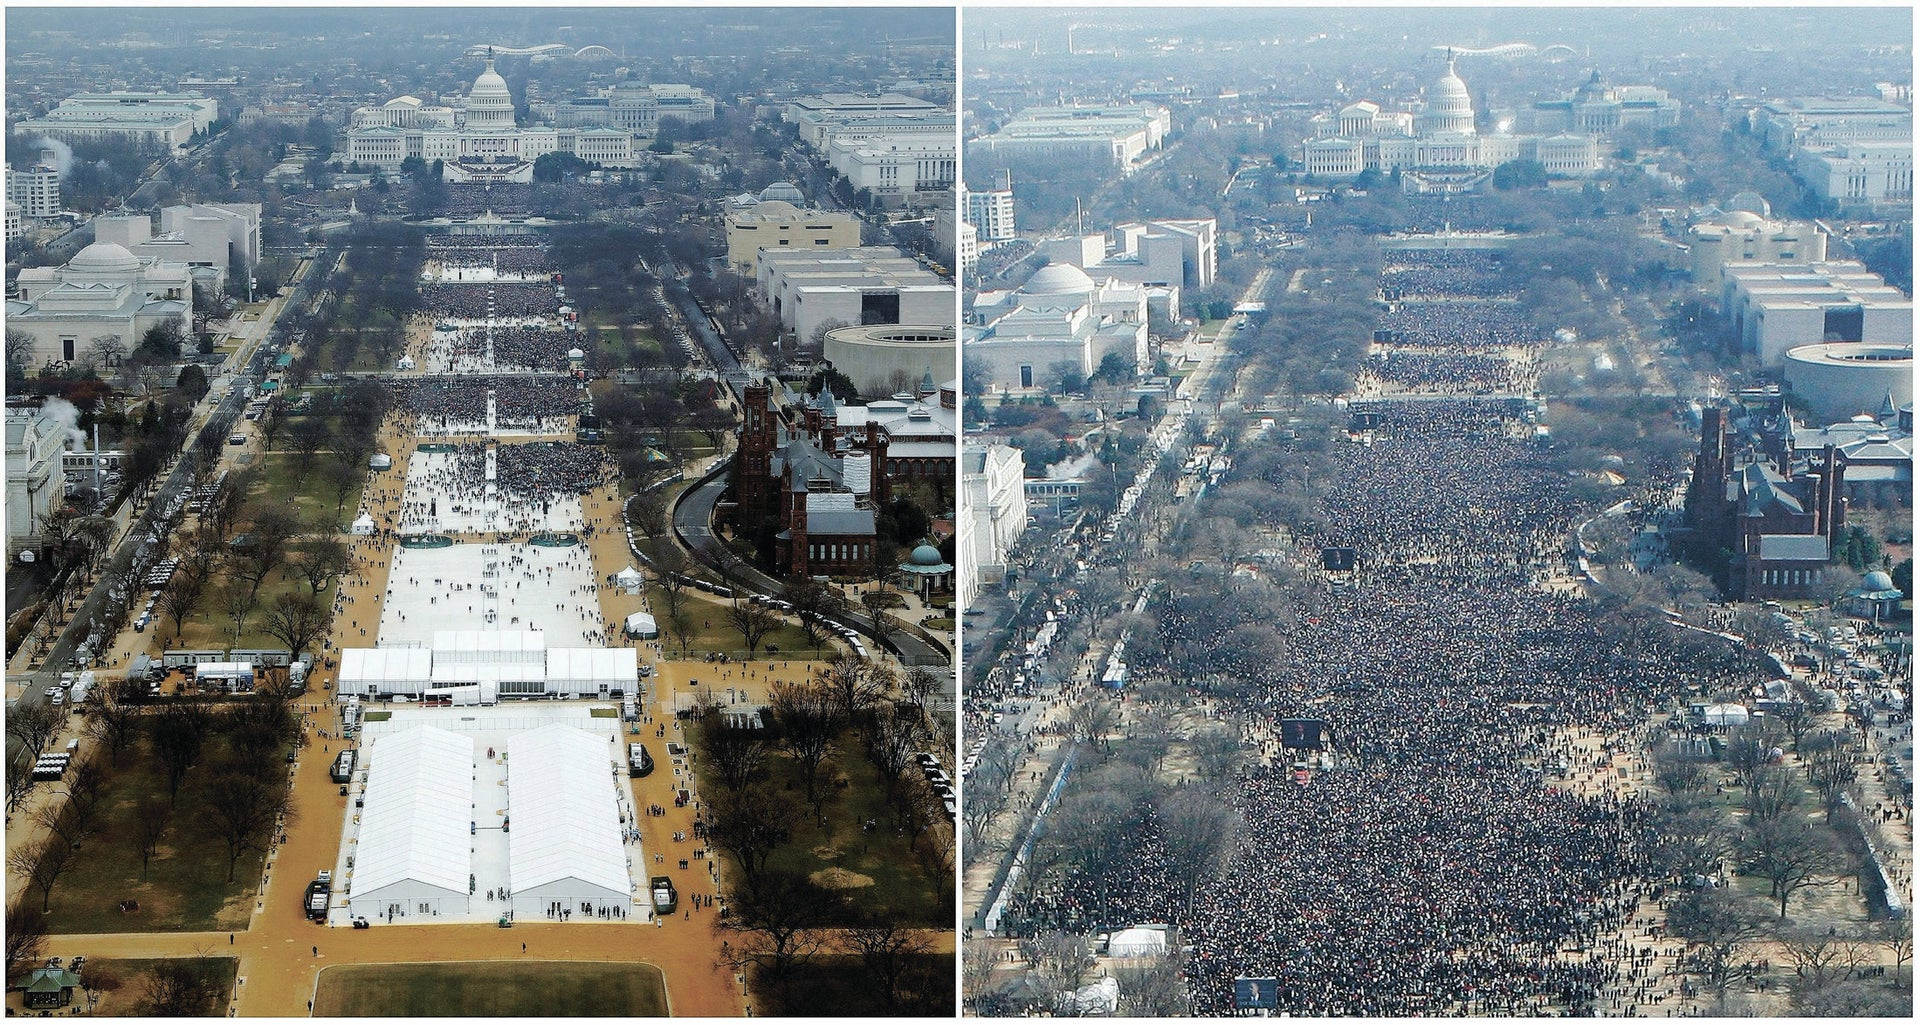 The inauguration ceremonies to swear in President Donald Trump, left, in 2017, and President Barack Obama in 2009, in Washington, D.C.